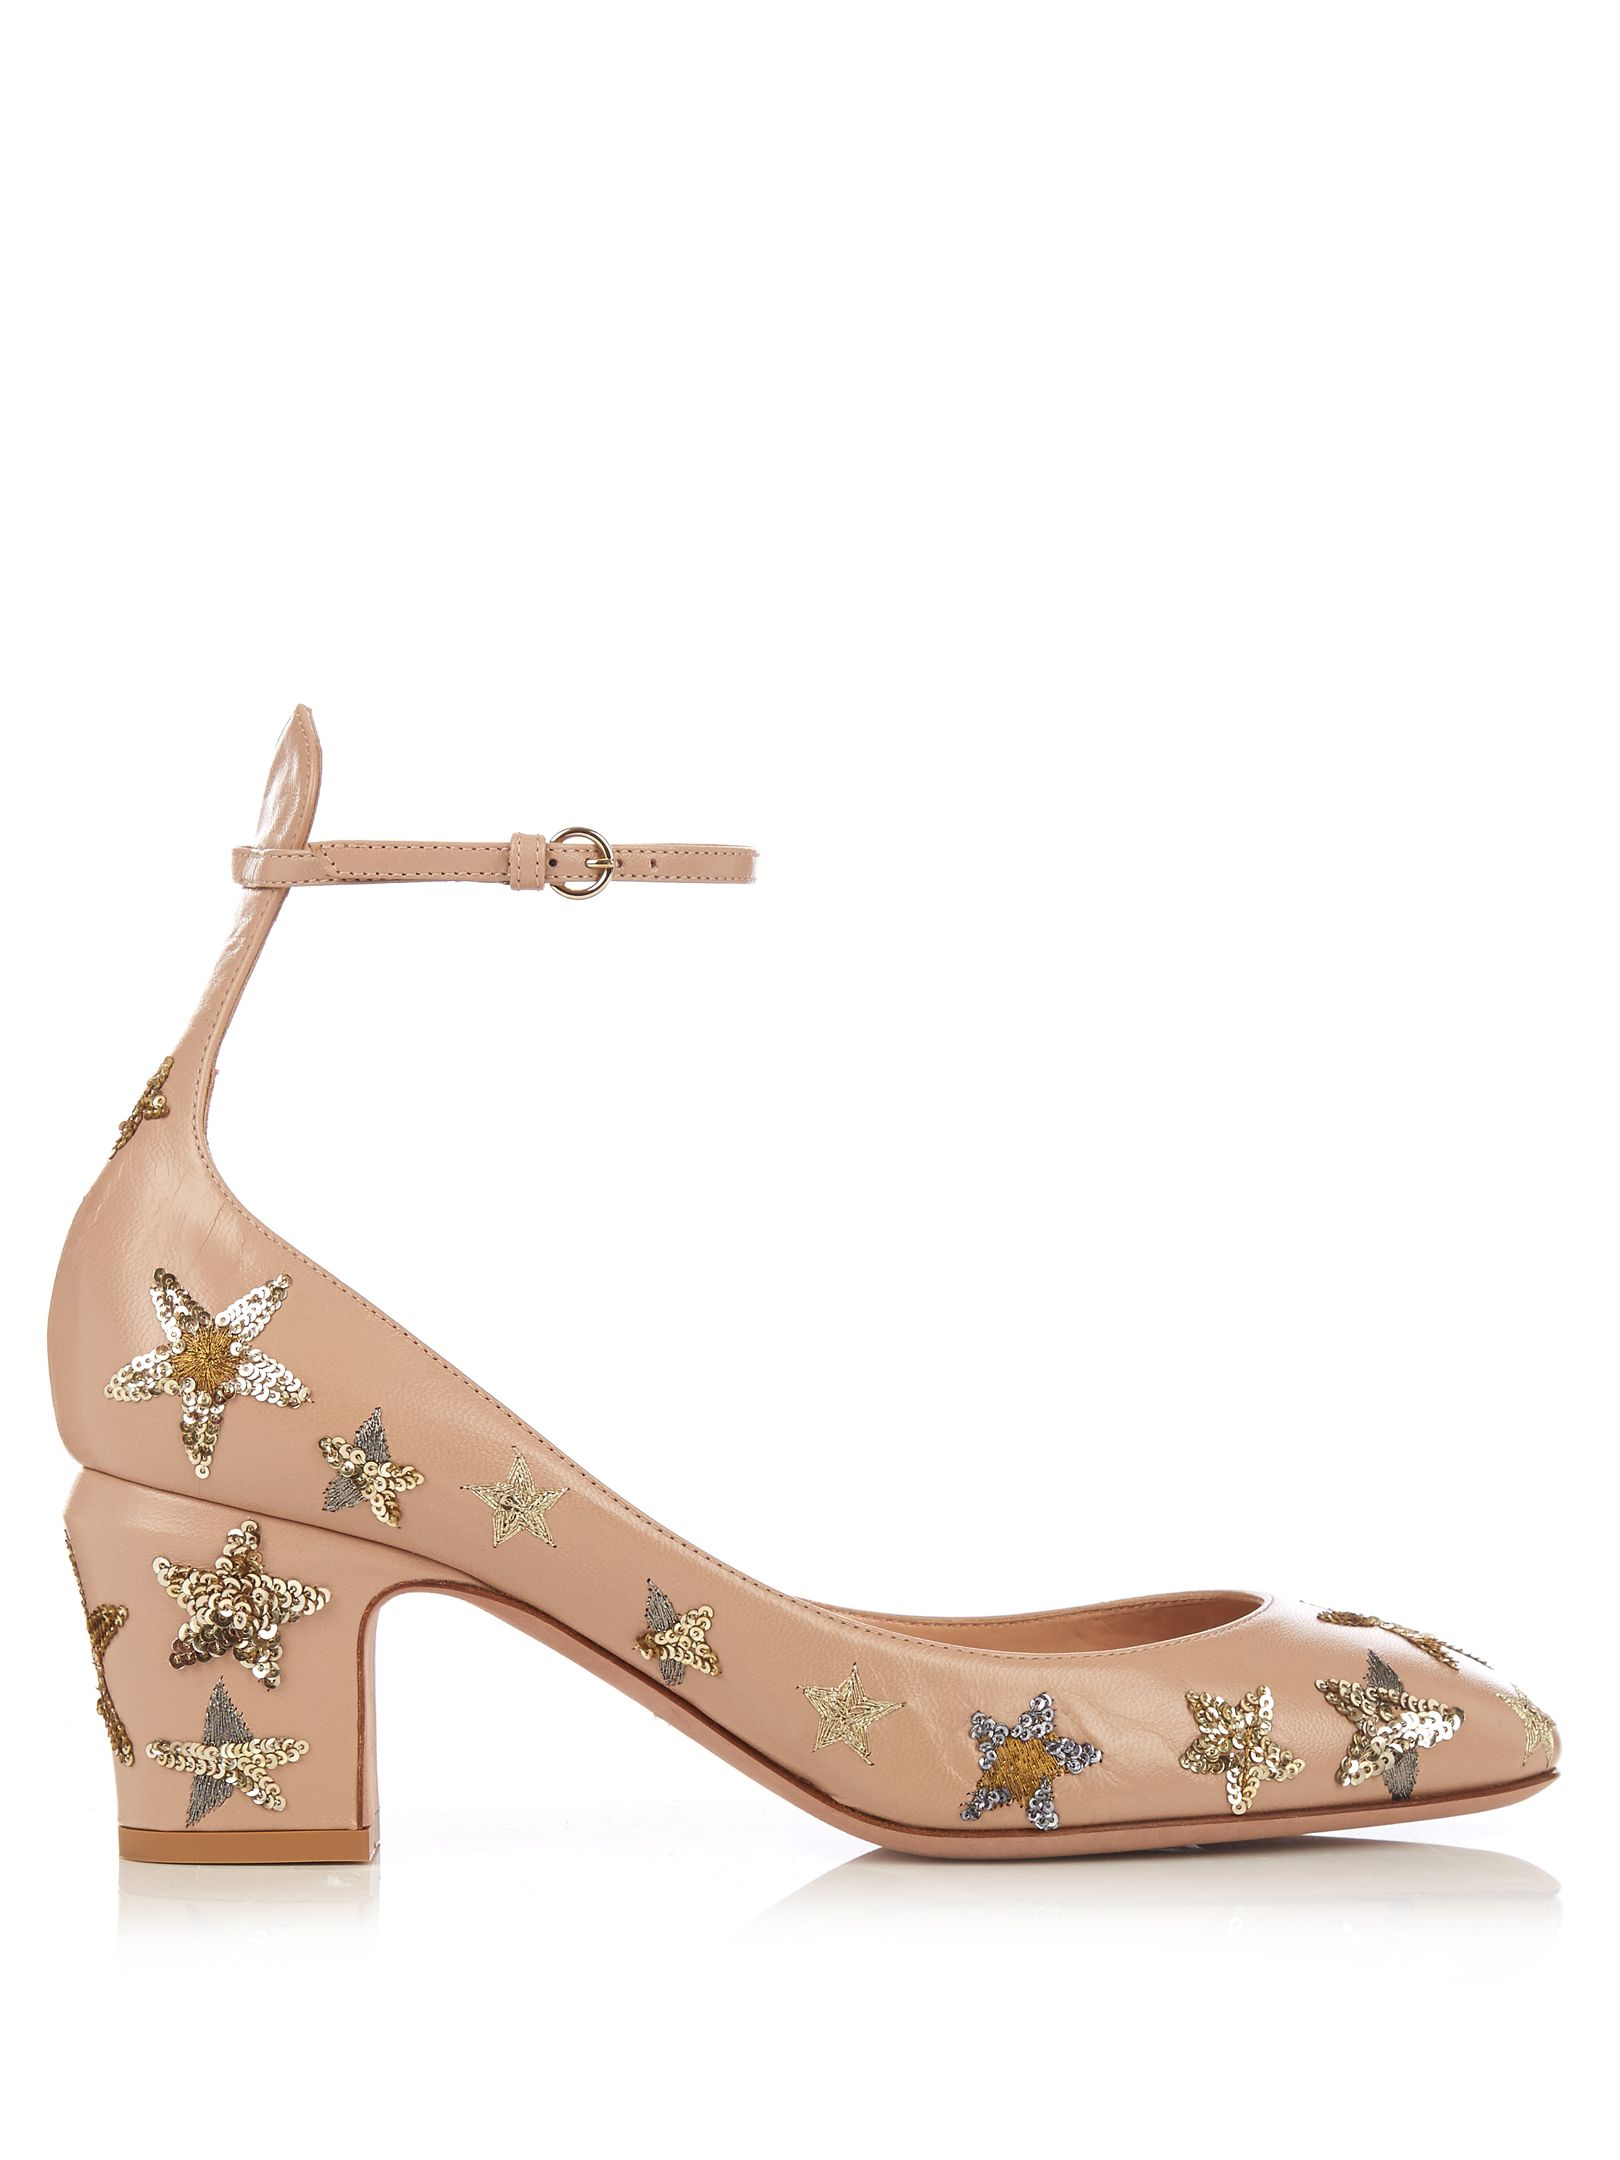 VALENTINO Tango star-embellished leather pumps | Hello Lover ...